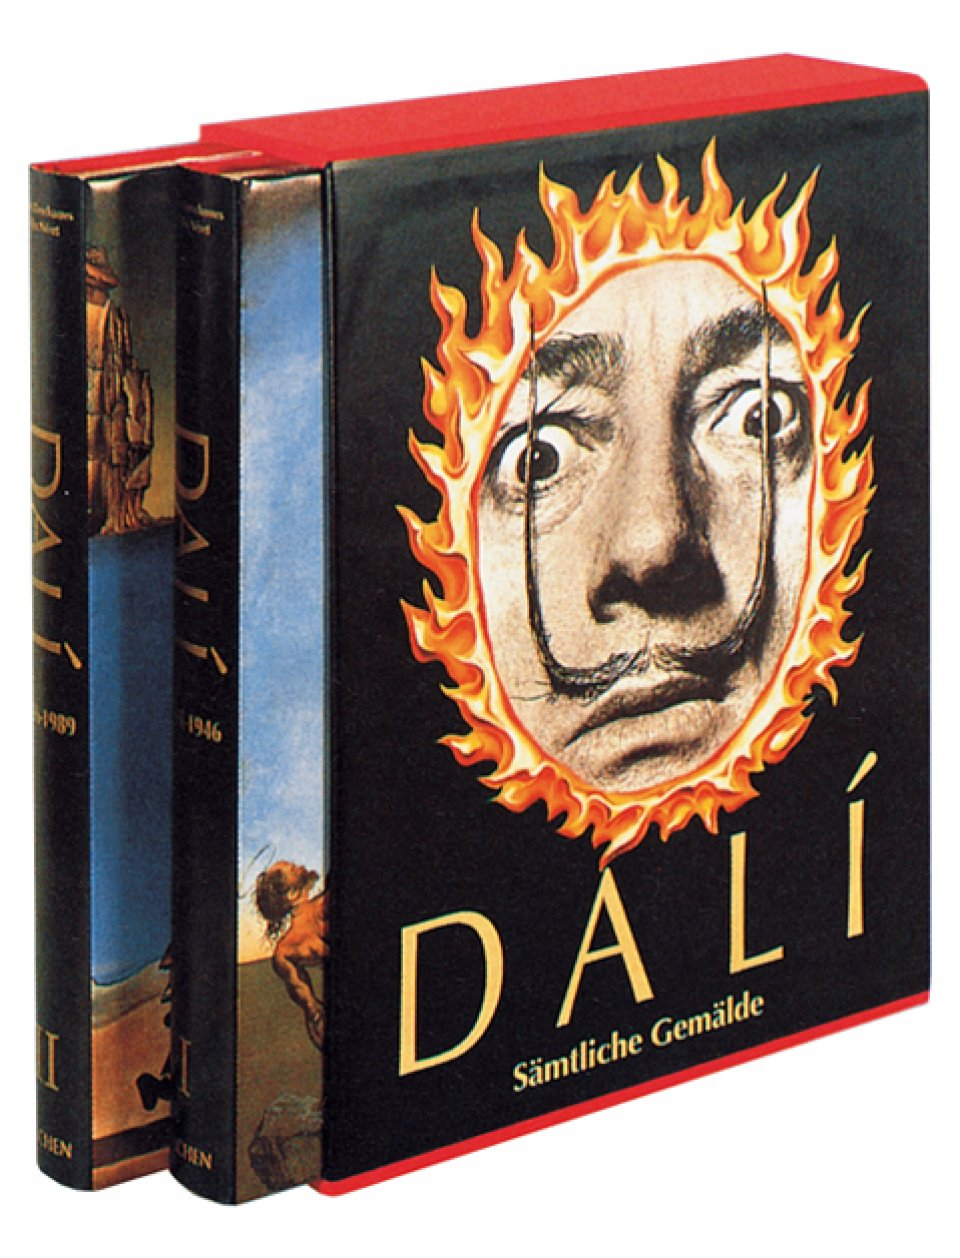 Dalí: The Complete Paintings by Gilles Néret. TASCHEN Books